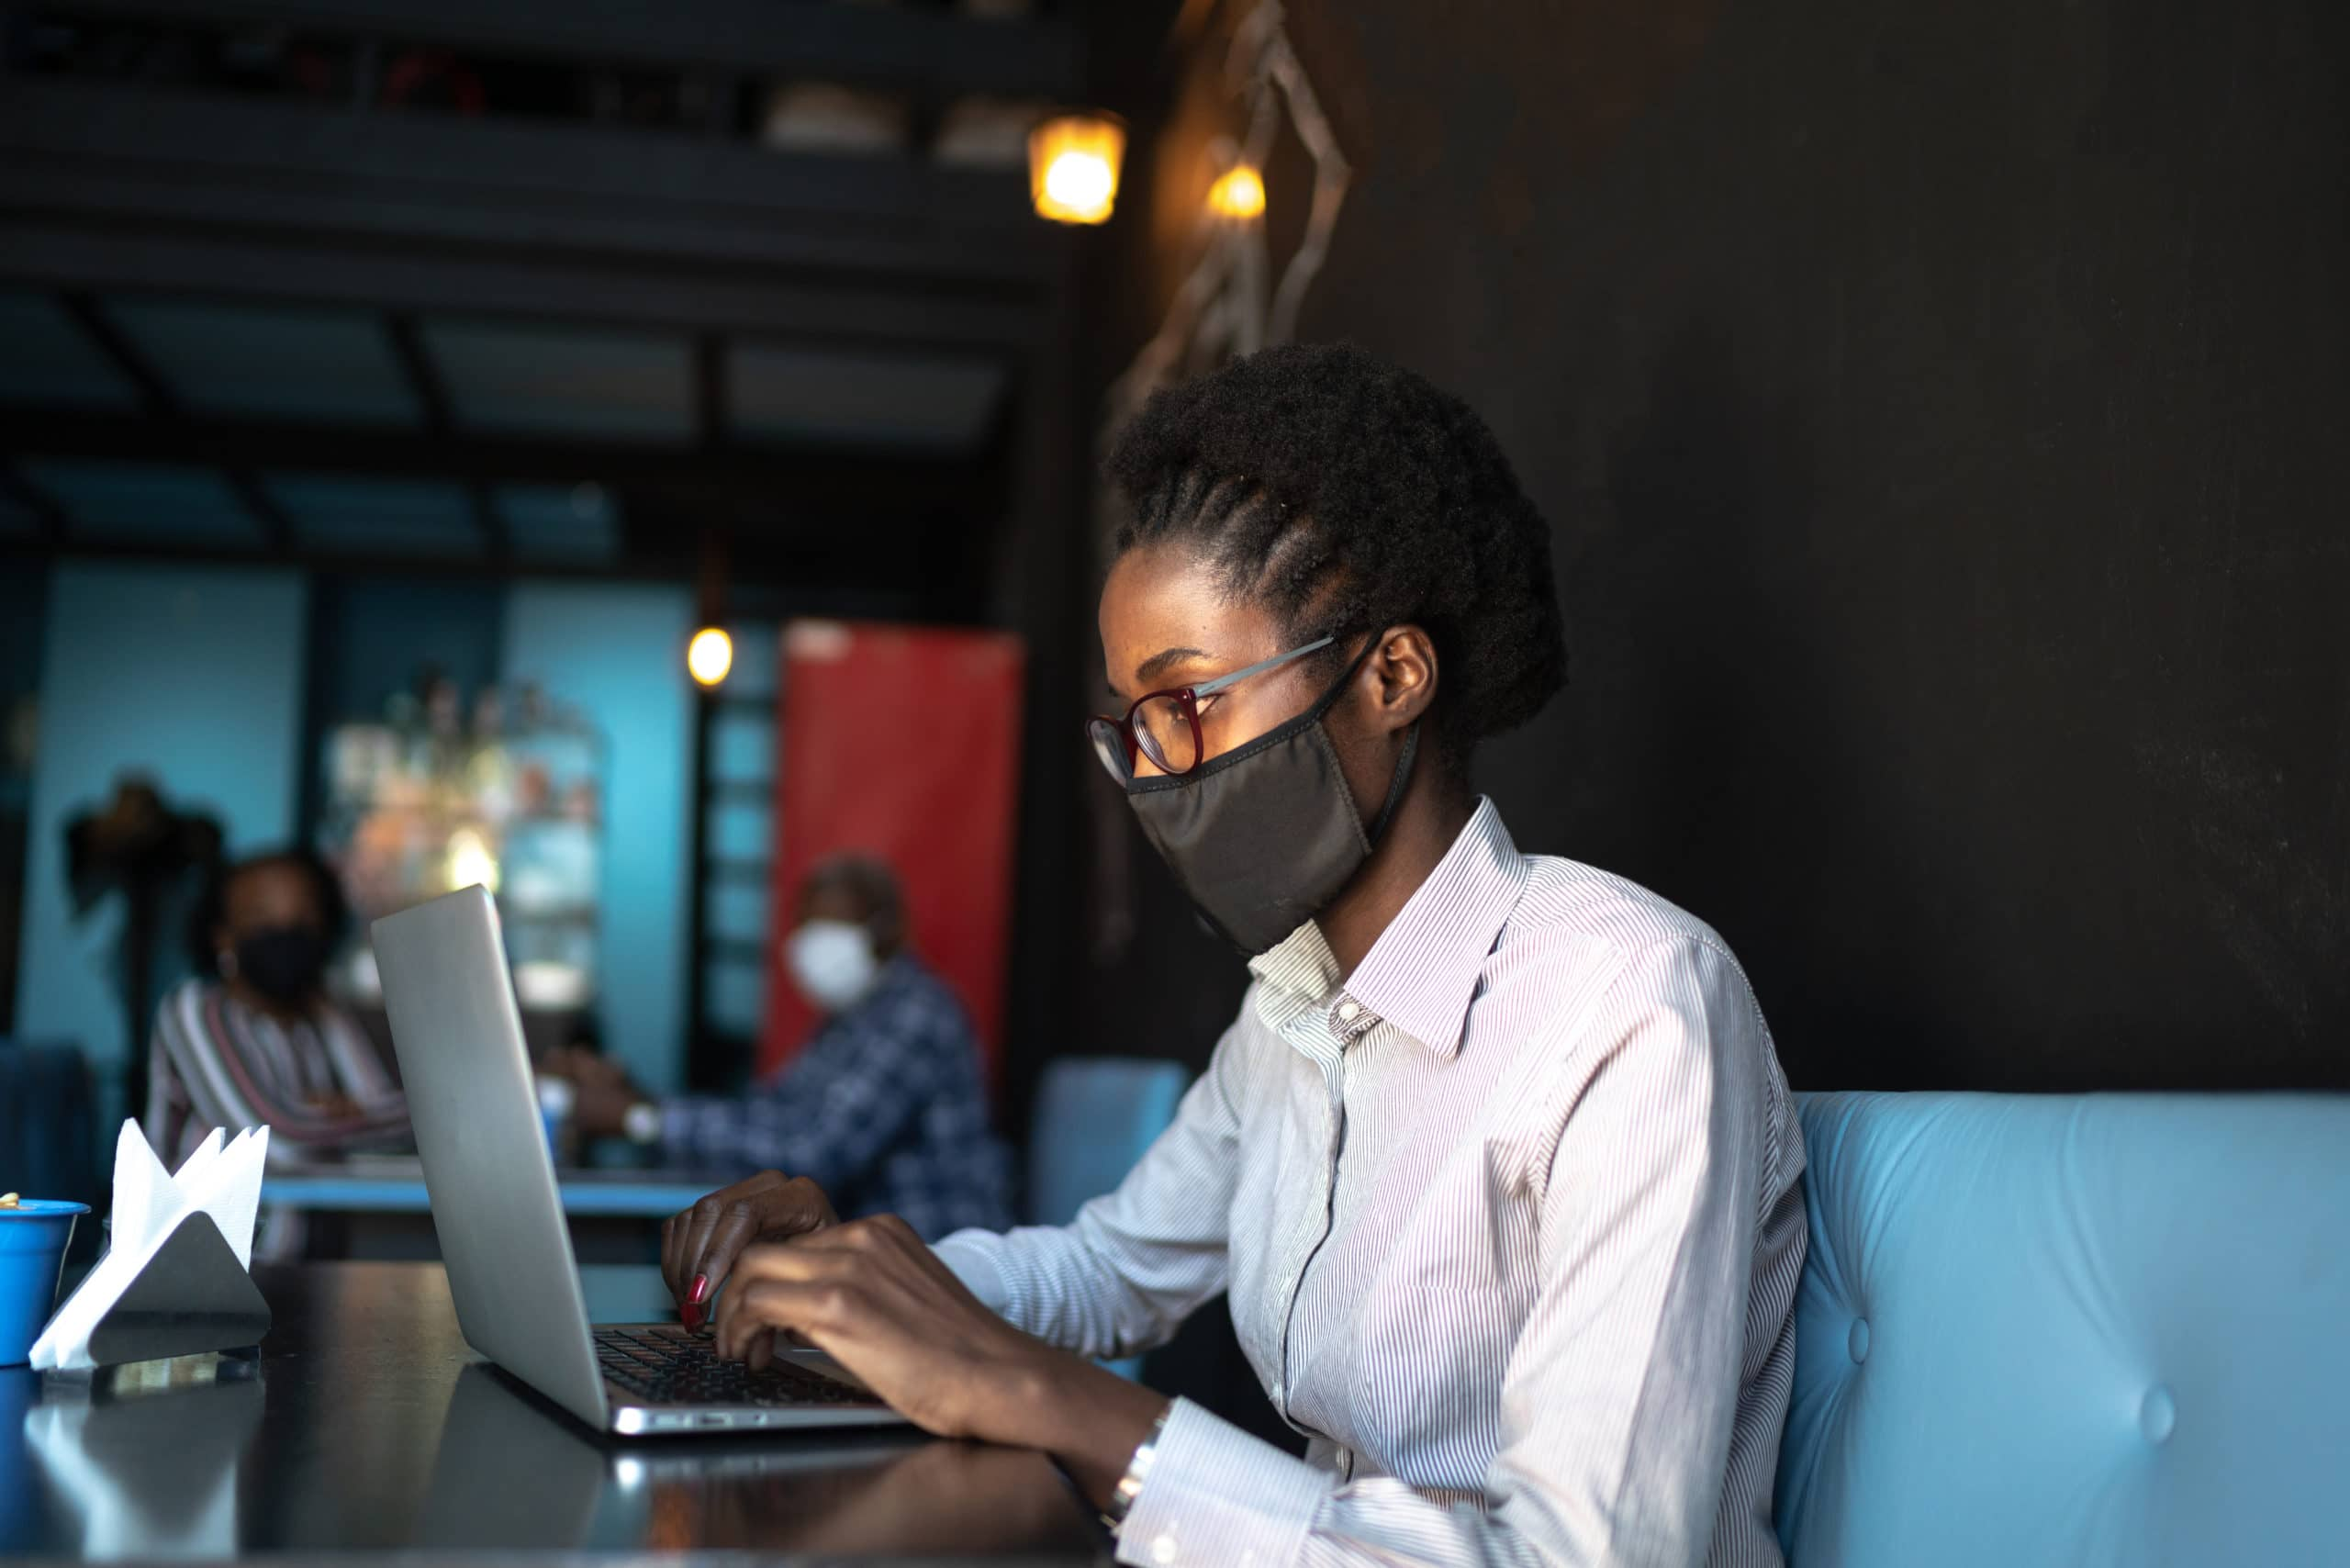 Young woman wearing a protective face mask and using a laptop in a restaurant